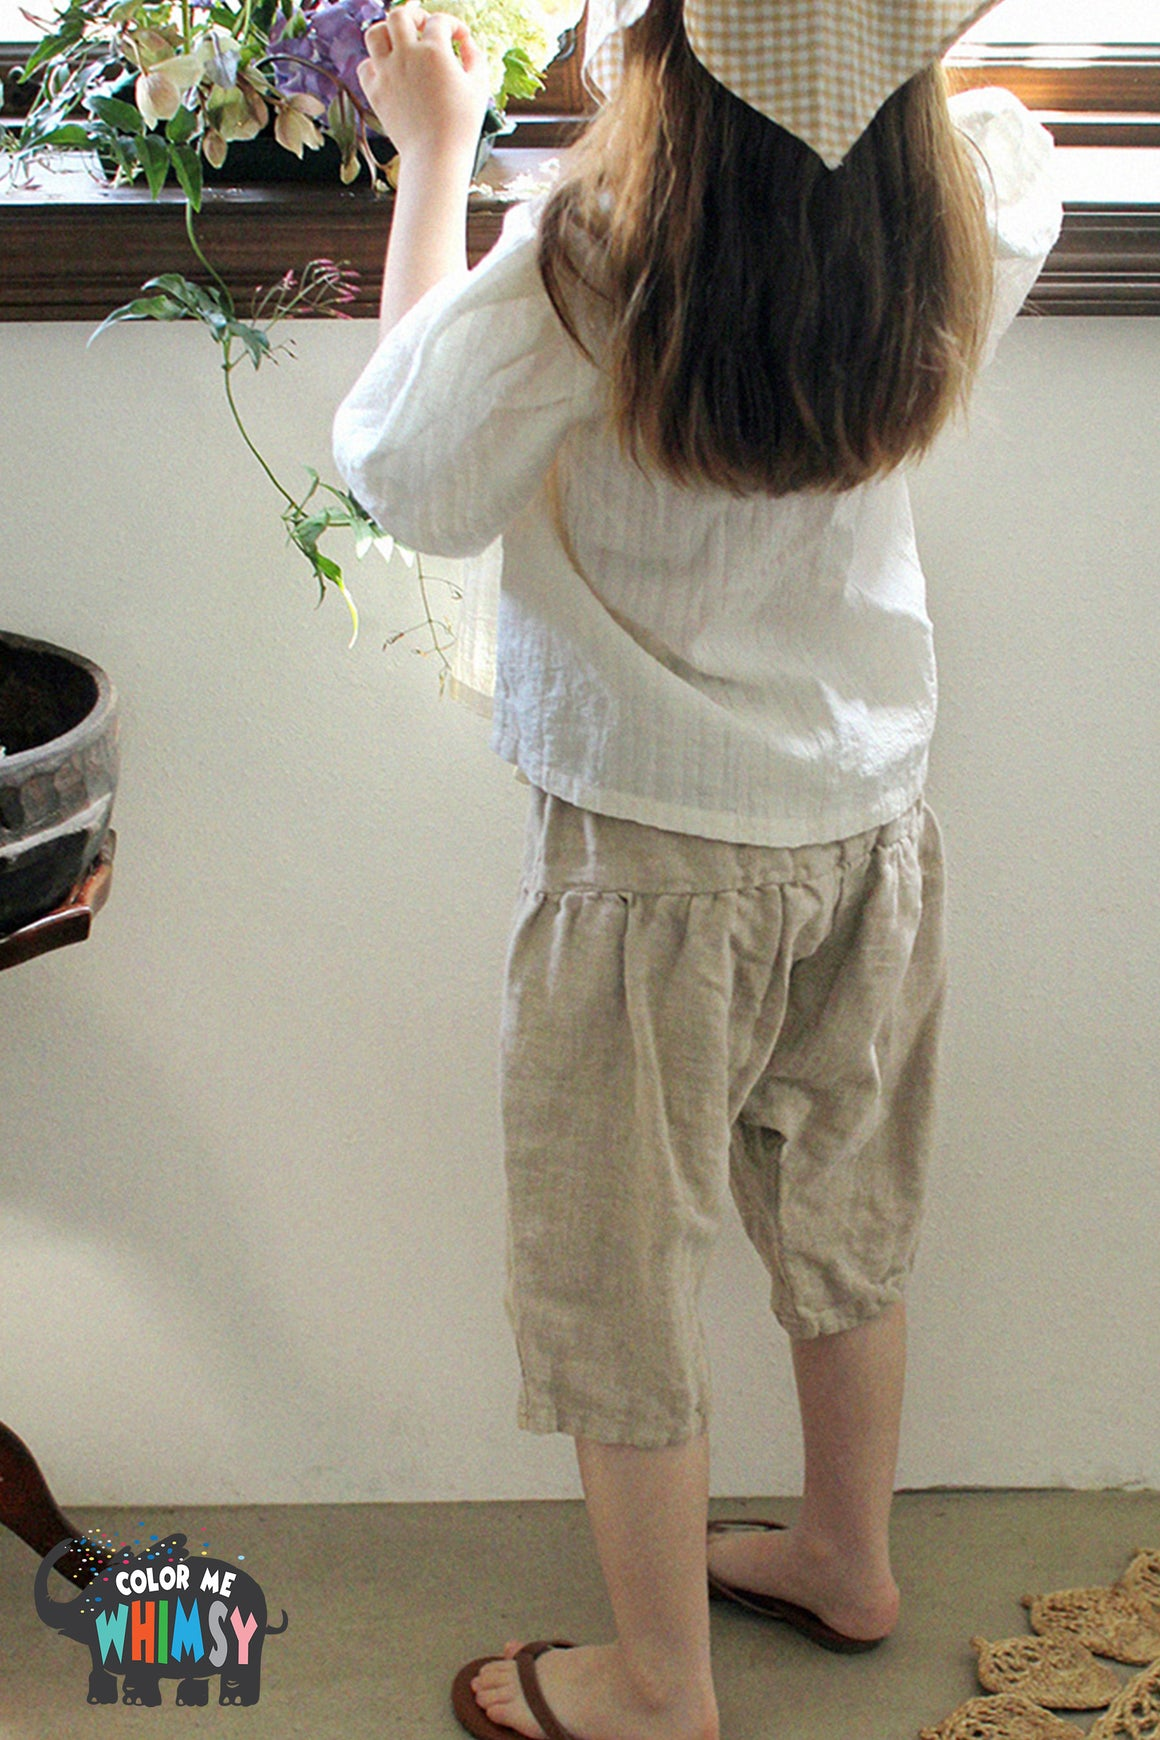 SCON Meco Pants at Color Me WHIMSY Hip Kid's Fashion Ethically Made in South Korea